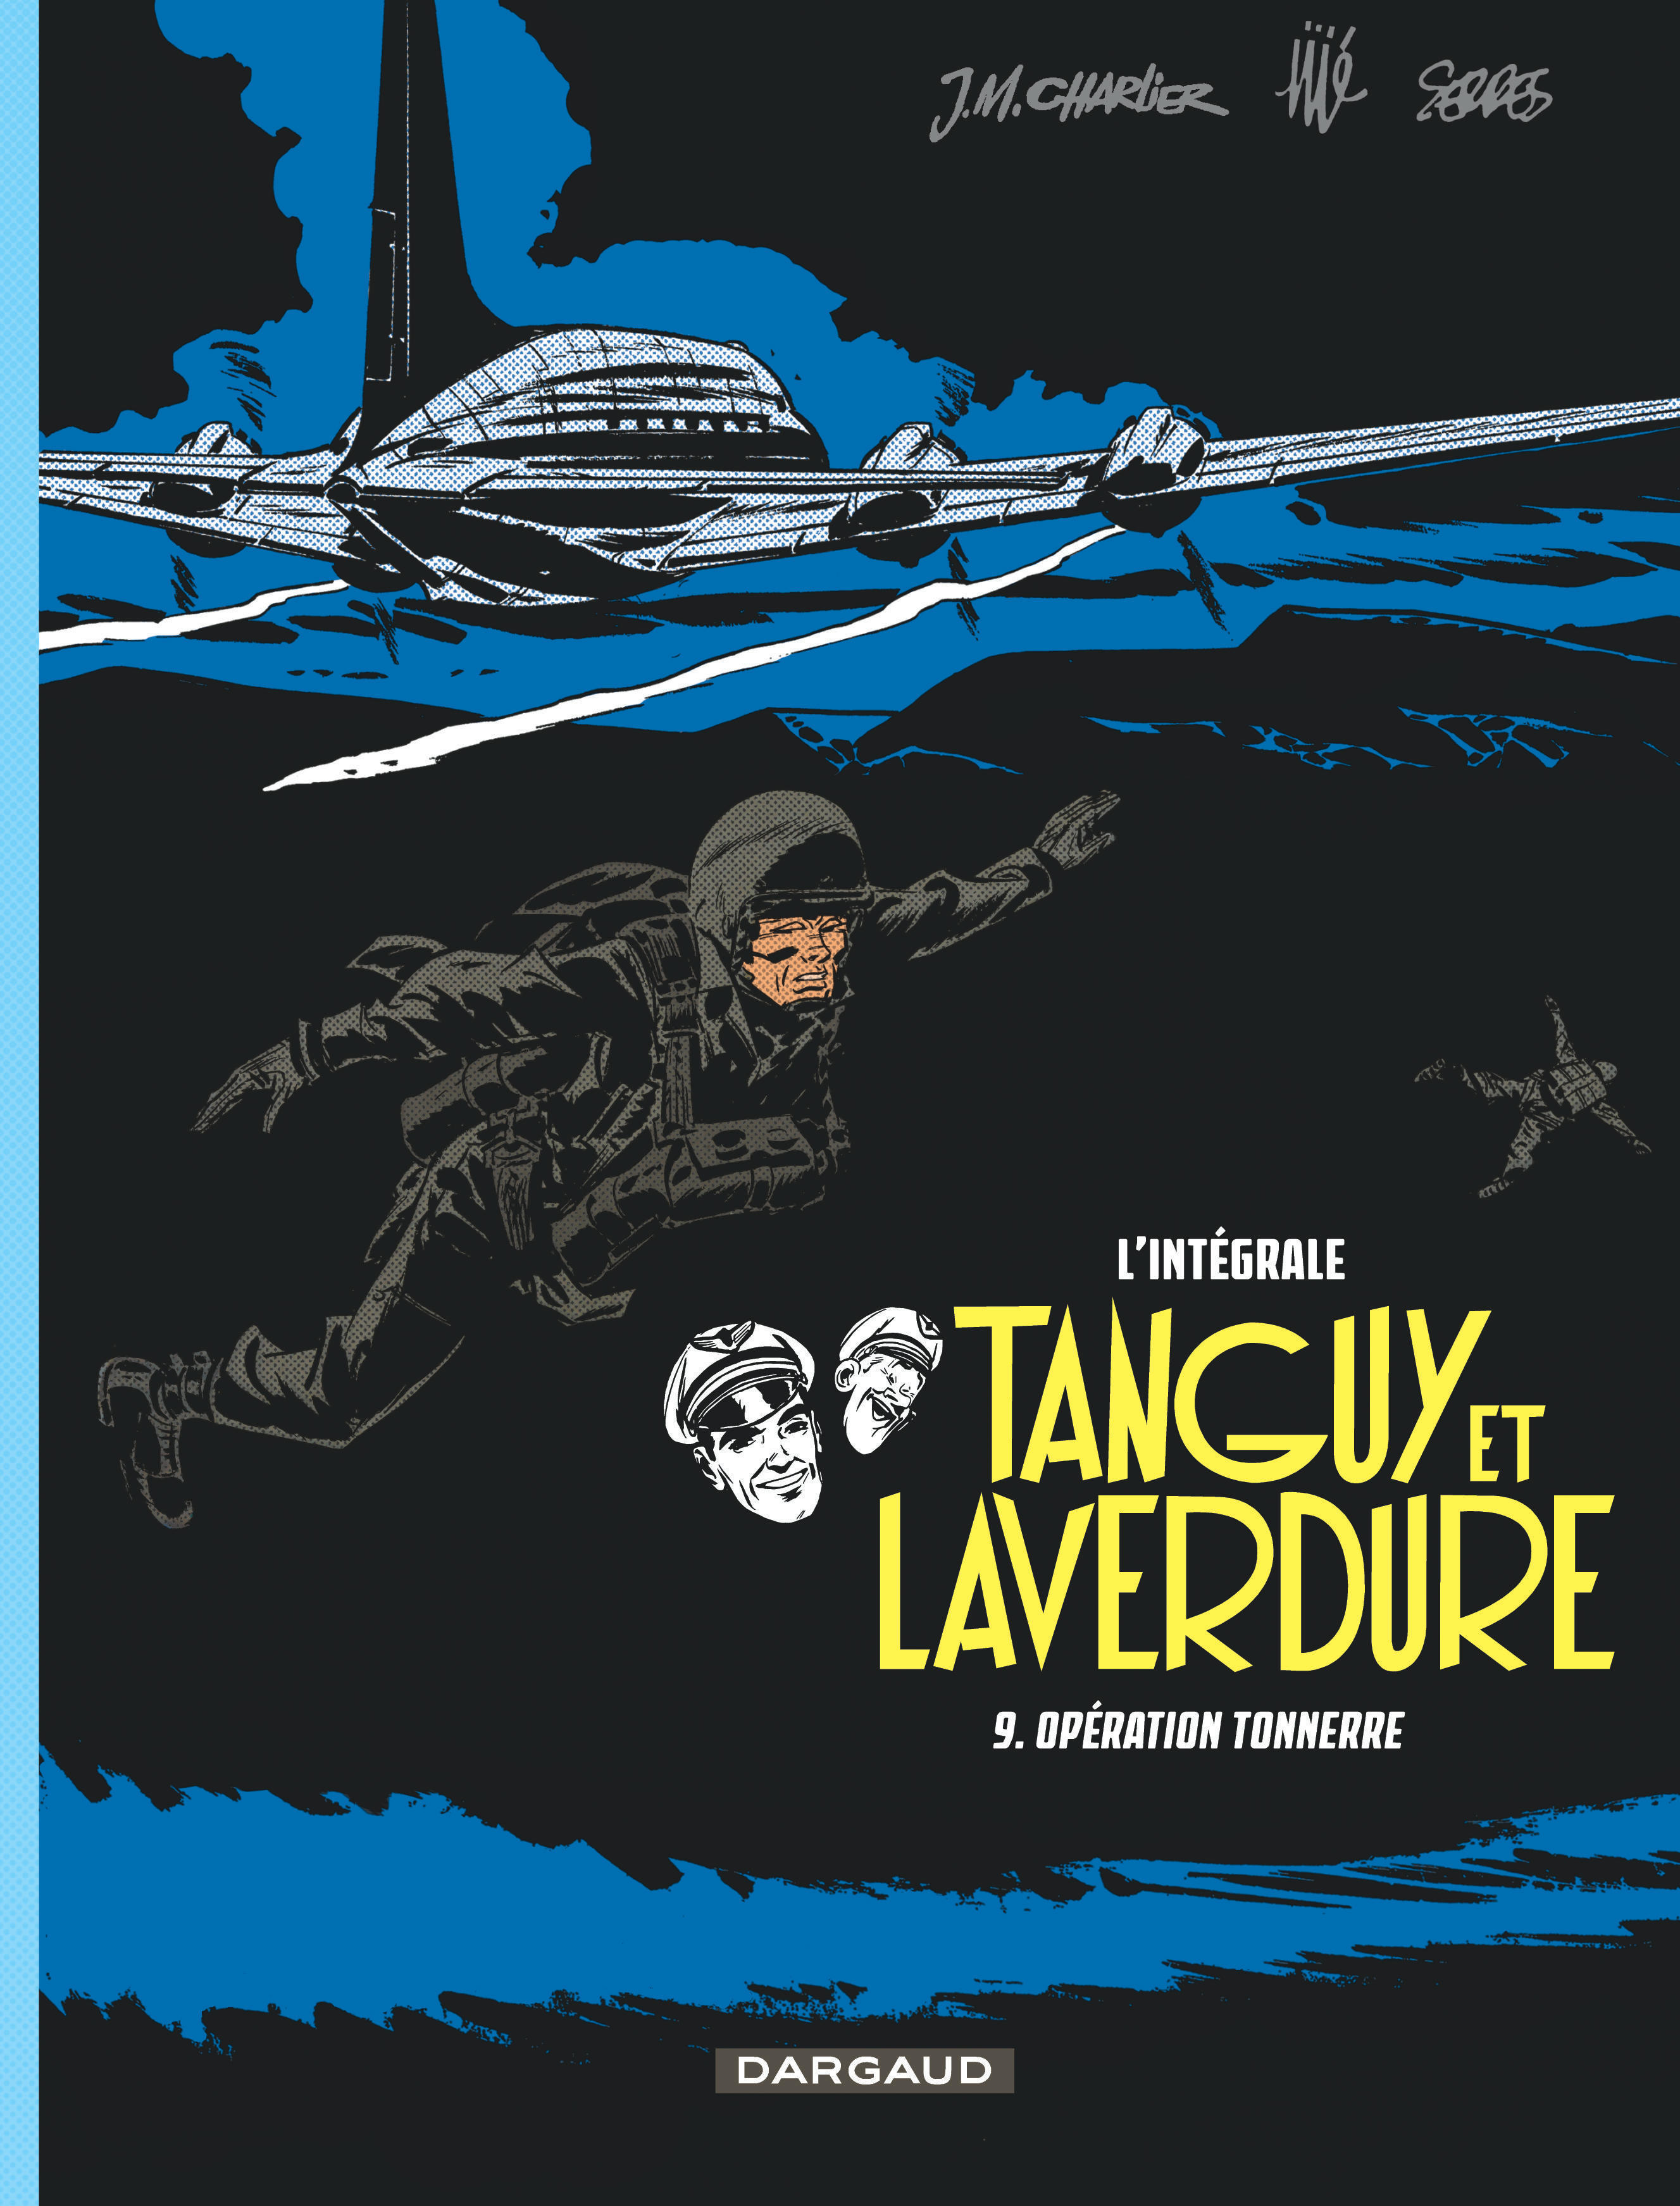 TANGUY ET LAVERDURE (INTEGRALE T9 OPERATION TONNERRE